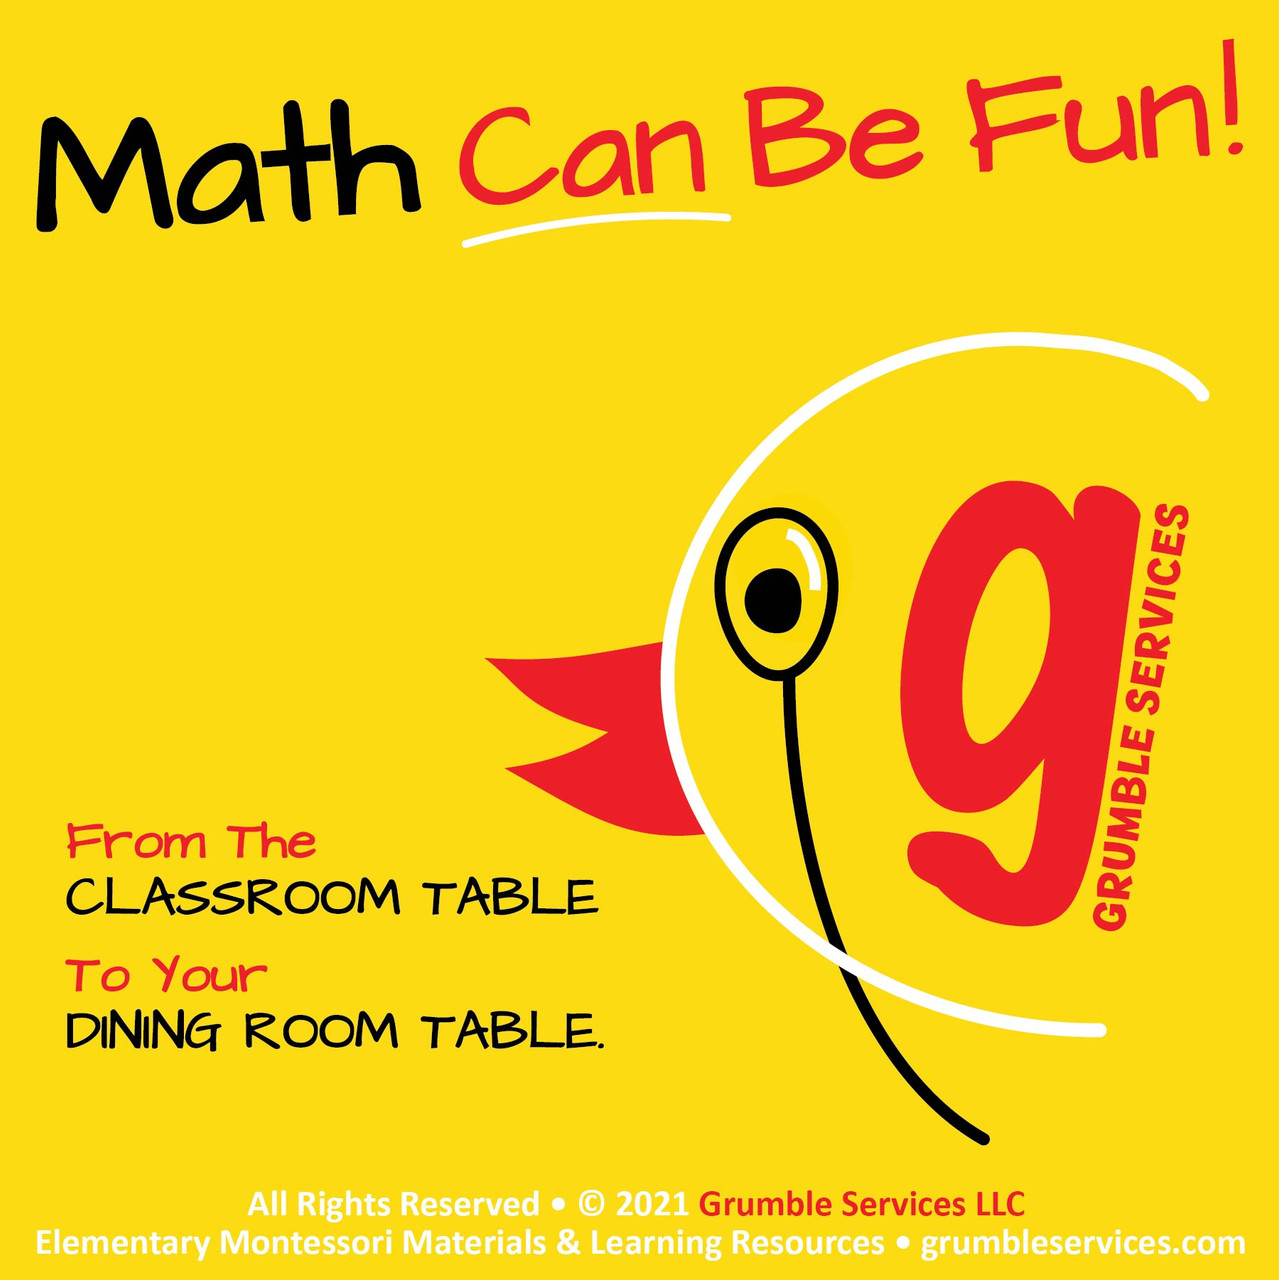 Inverse Operations & Fact Families BUNDLE: 5s, 6s, 7s, 8s, 9s - Math Facts - Elementary Montessori Math help (10 pages +Key) -  Mental Math